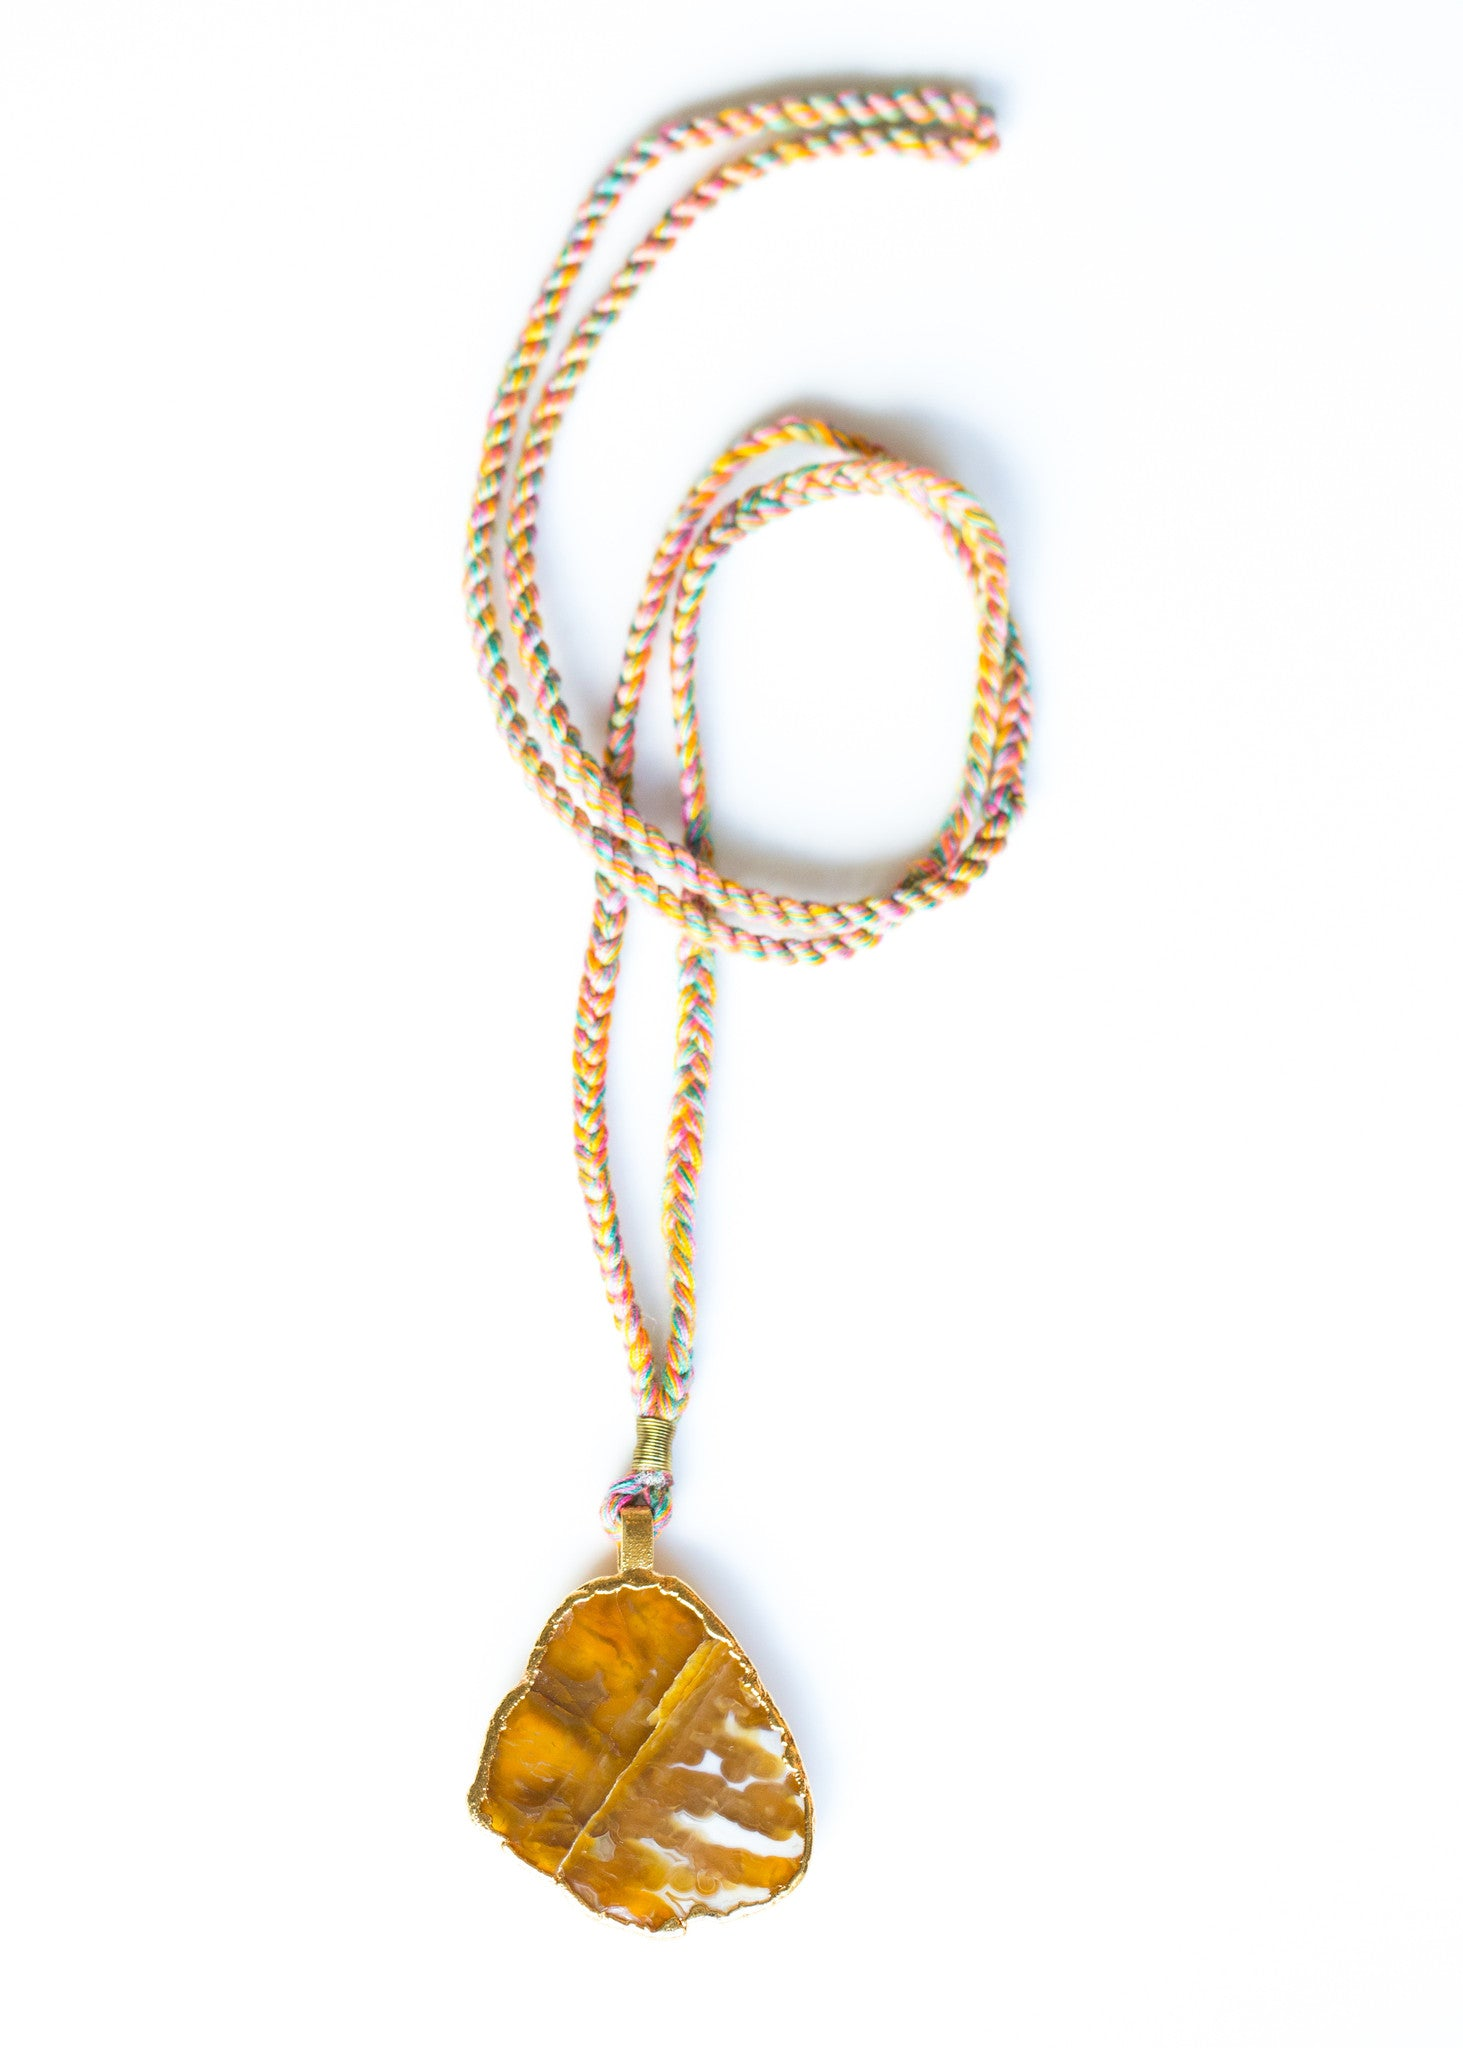 EARTH AGATE NECKLACE IN 9 CARAT